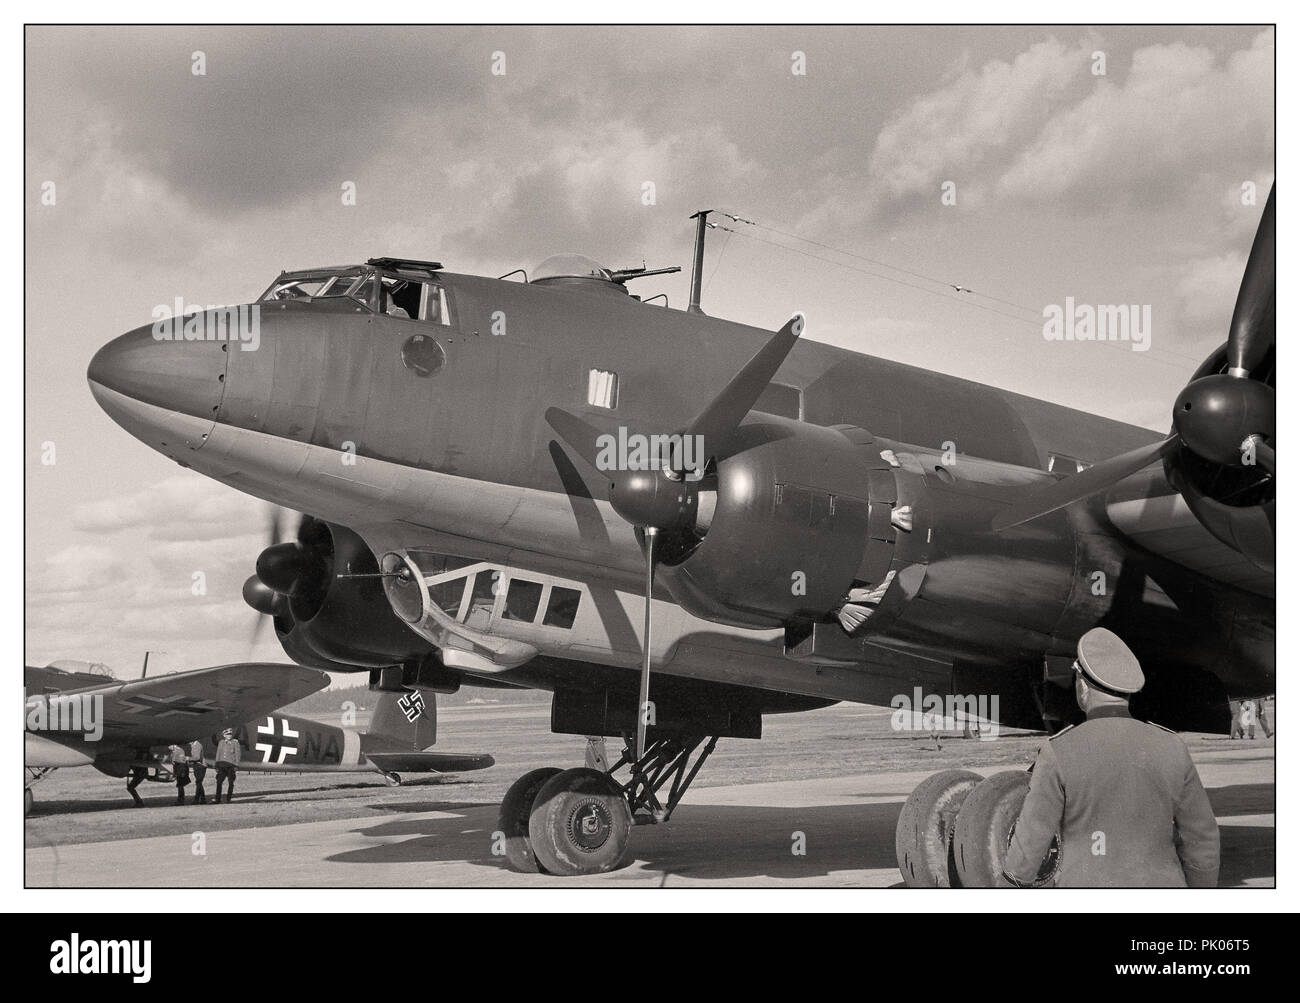 Adolf Hitler's personal Luftwaffe Focke-Wulf Fw 200 Condor with Nazi Swastika insignia fighter escort at Immola Airport during his visit to see Field Marshal Mannerheim 4 June 1942 in Finland - Stock Image